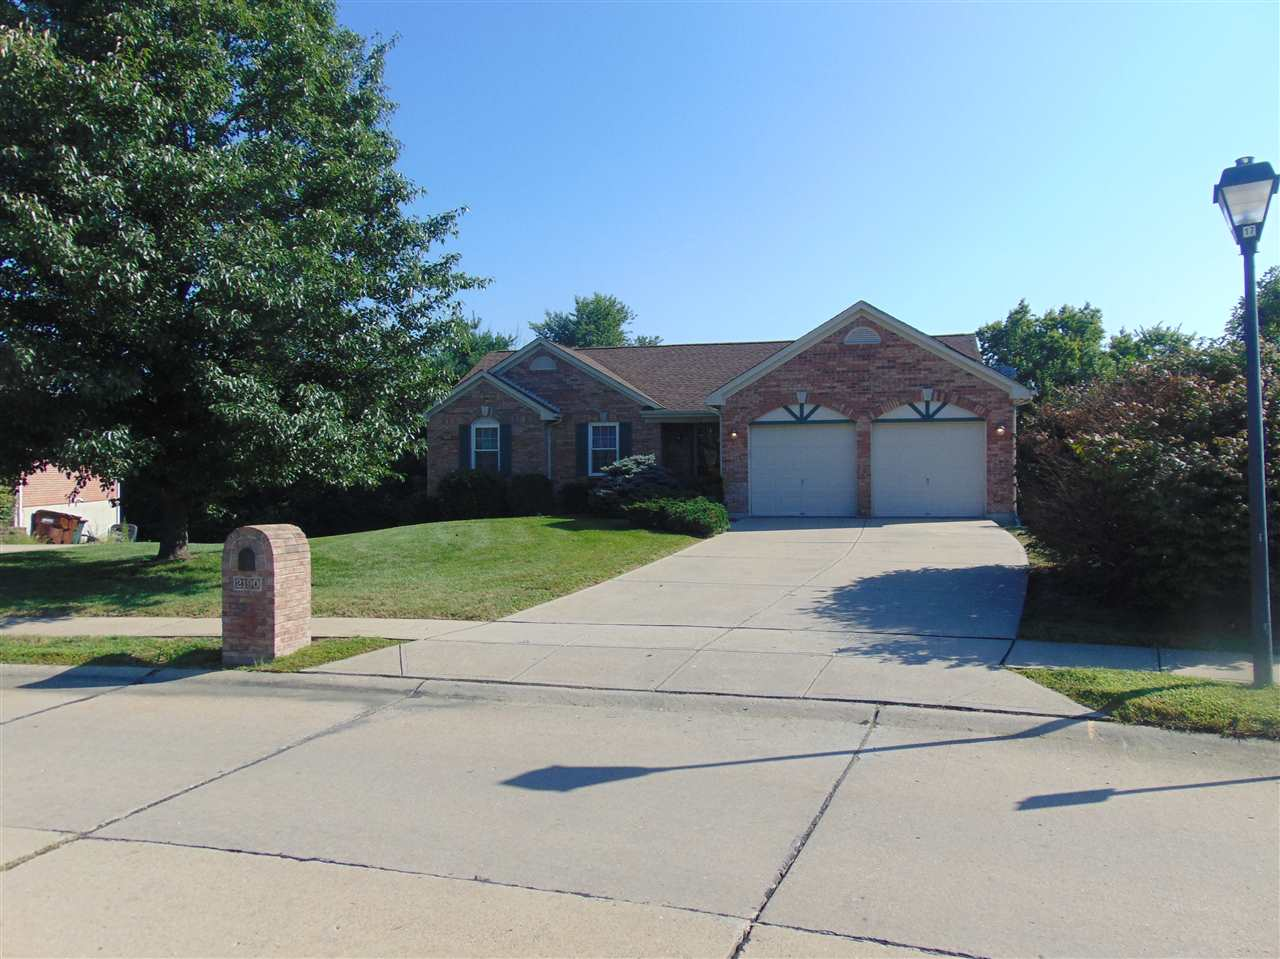 Photo 1 for 2190 Hartland Blvd Independence, KY 41051